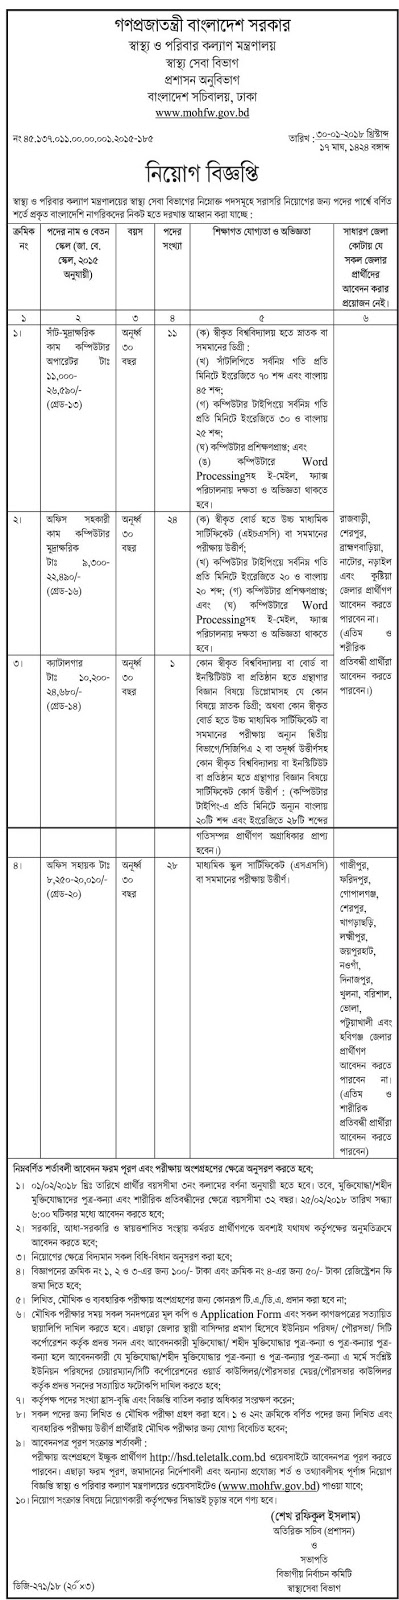 Ministry of Health and Family Welfare Job Circular 2018 www.mohfw.gov.bd 2